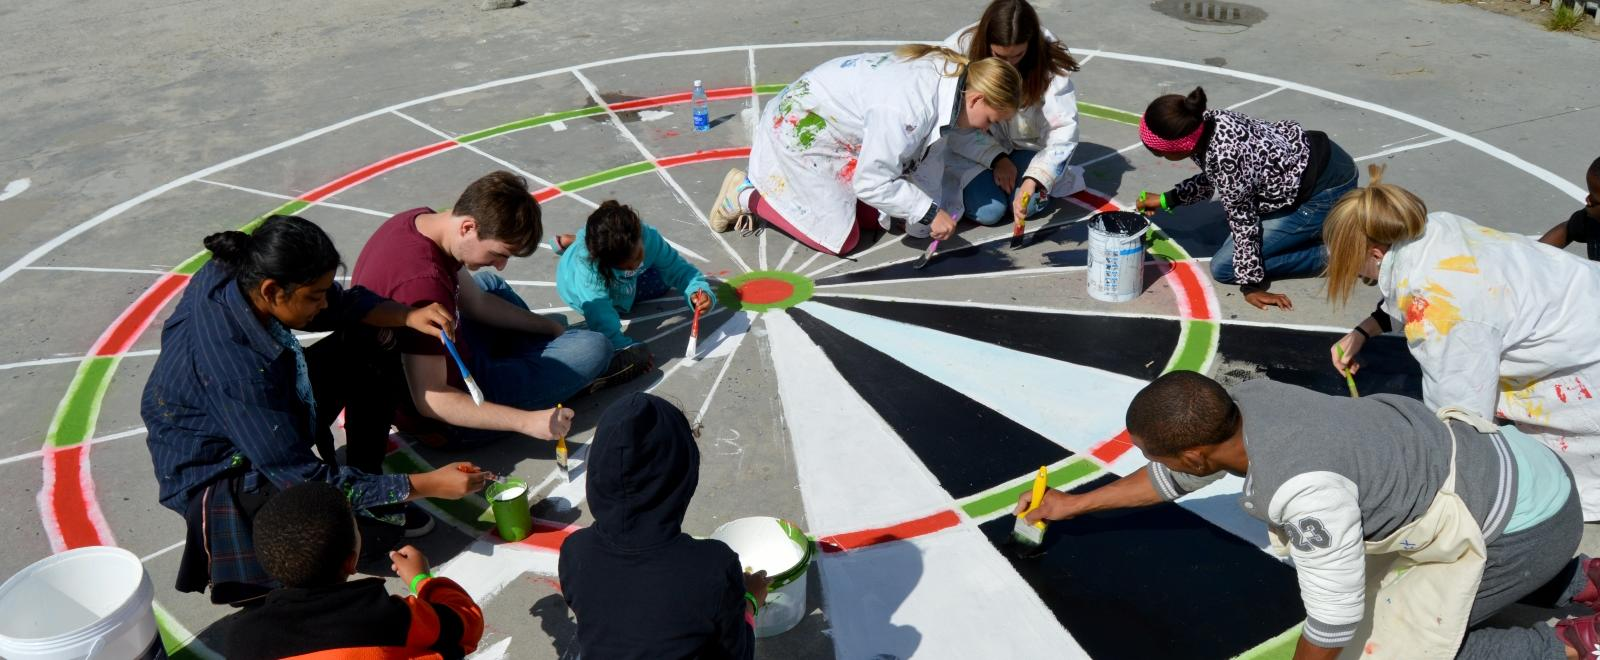 A Roundsquare group hosted by Tore's Foundation paints a playground with local community members in Cape Town, South Africa.